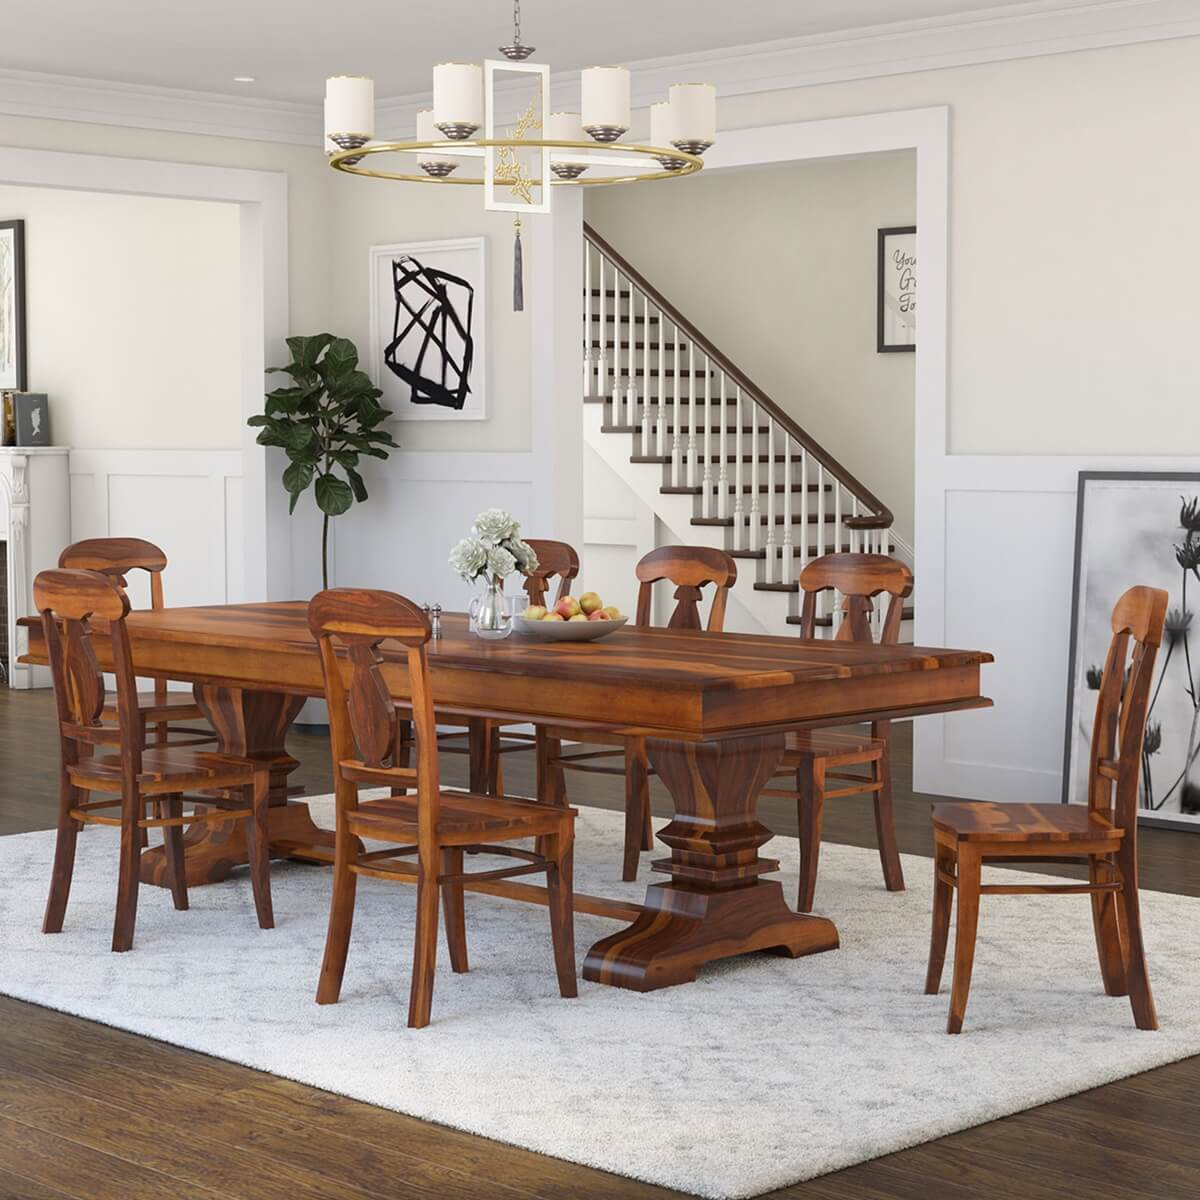 nottingham solid wood 92 trestle dining table benches 2 chairs. Black Bedroom Furniture Sets. Home Design Ideas